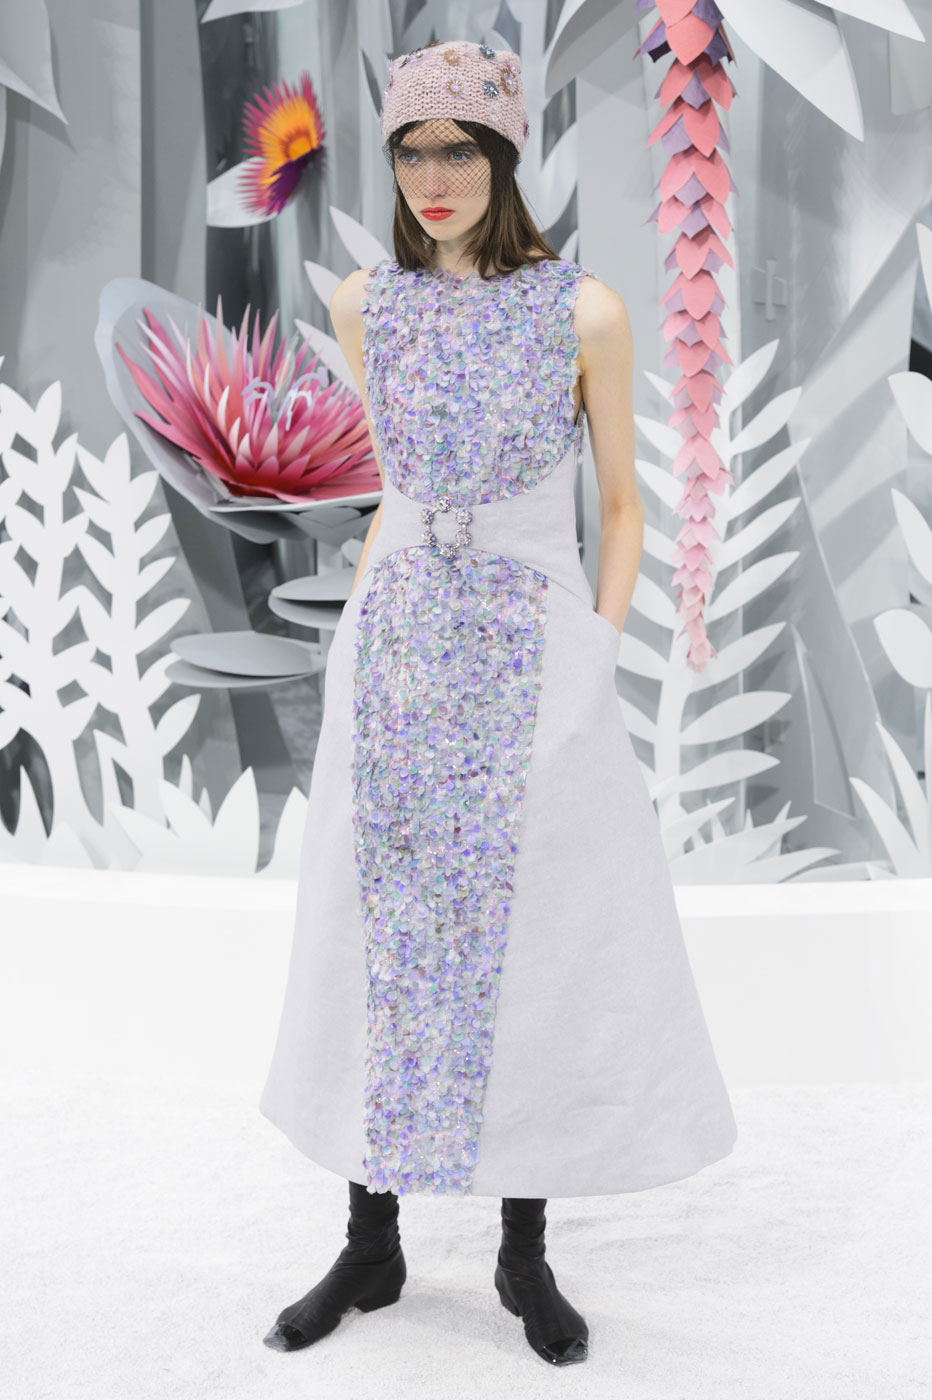 Chanel-fashion-runway-show-haute-couture-paris-spring-summer-2015-the-impression-129